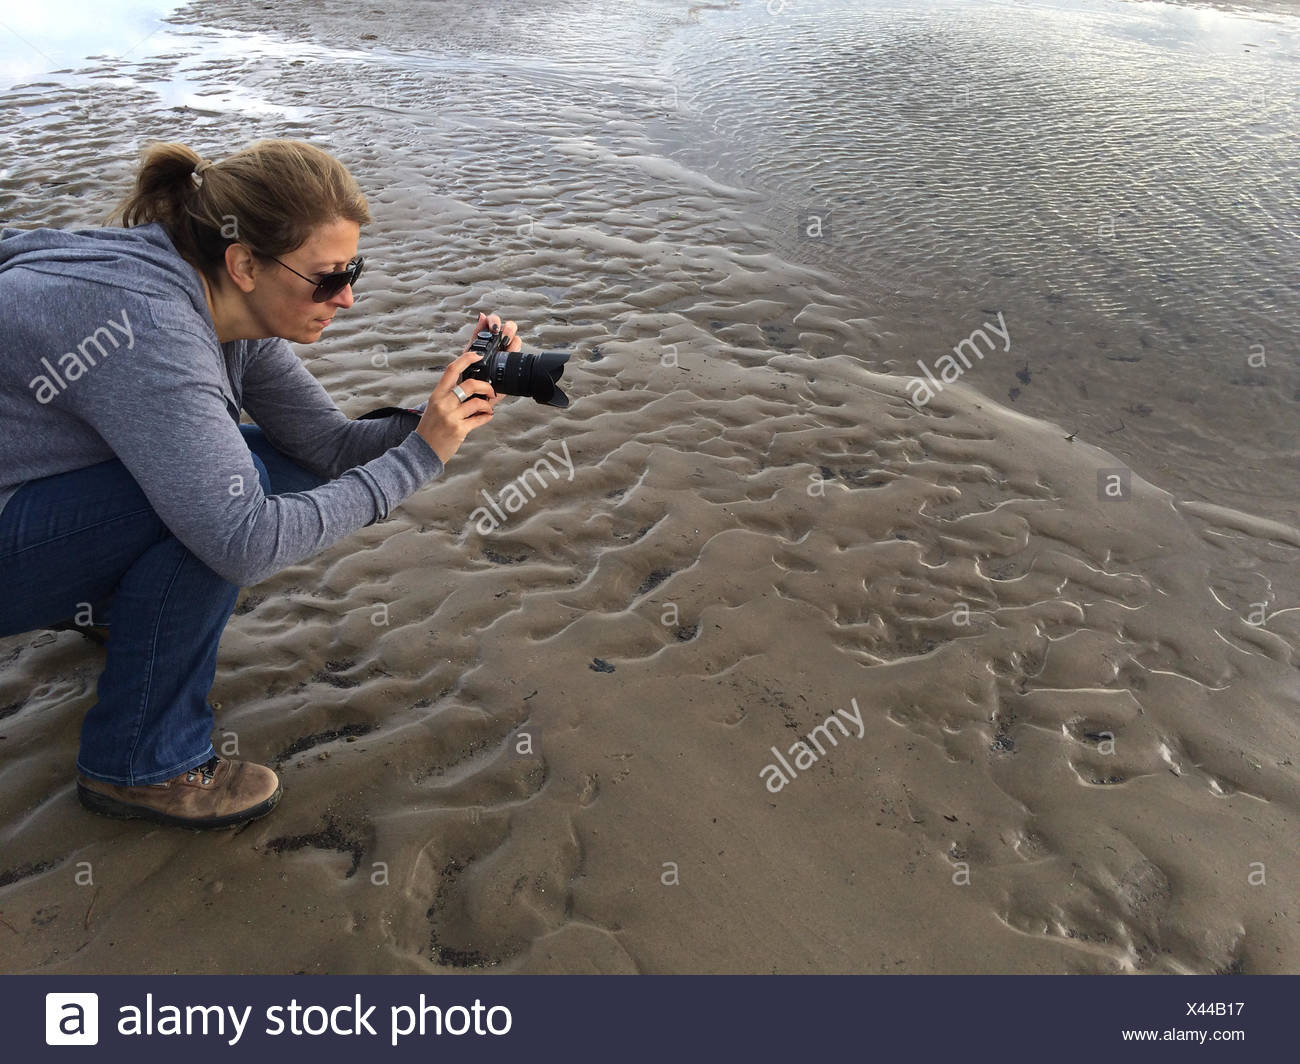 Woman taking a photograph on the beach, Wales, UK - Stock Image